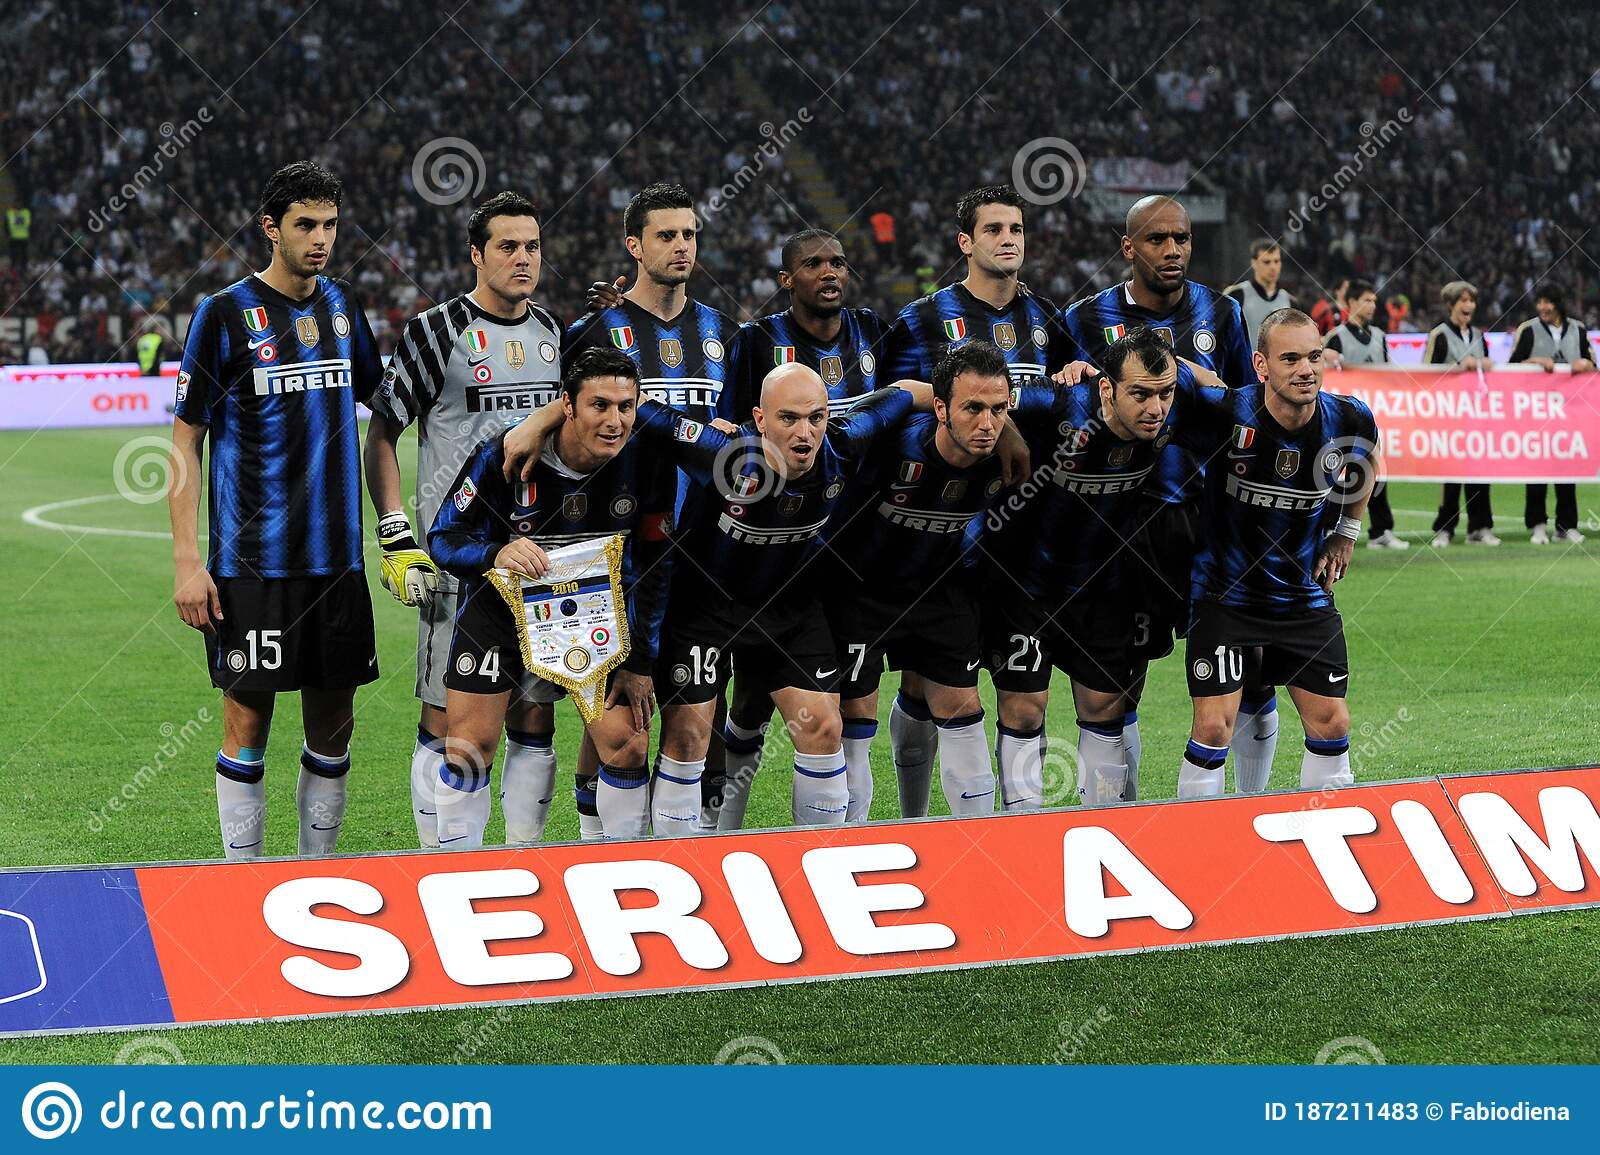 Inter Players In Formation Before The Match Editorial Stock Photo Image Of Playing Italian 187211483